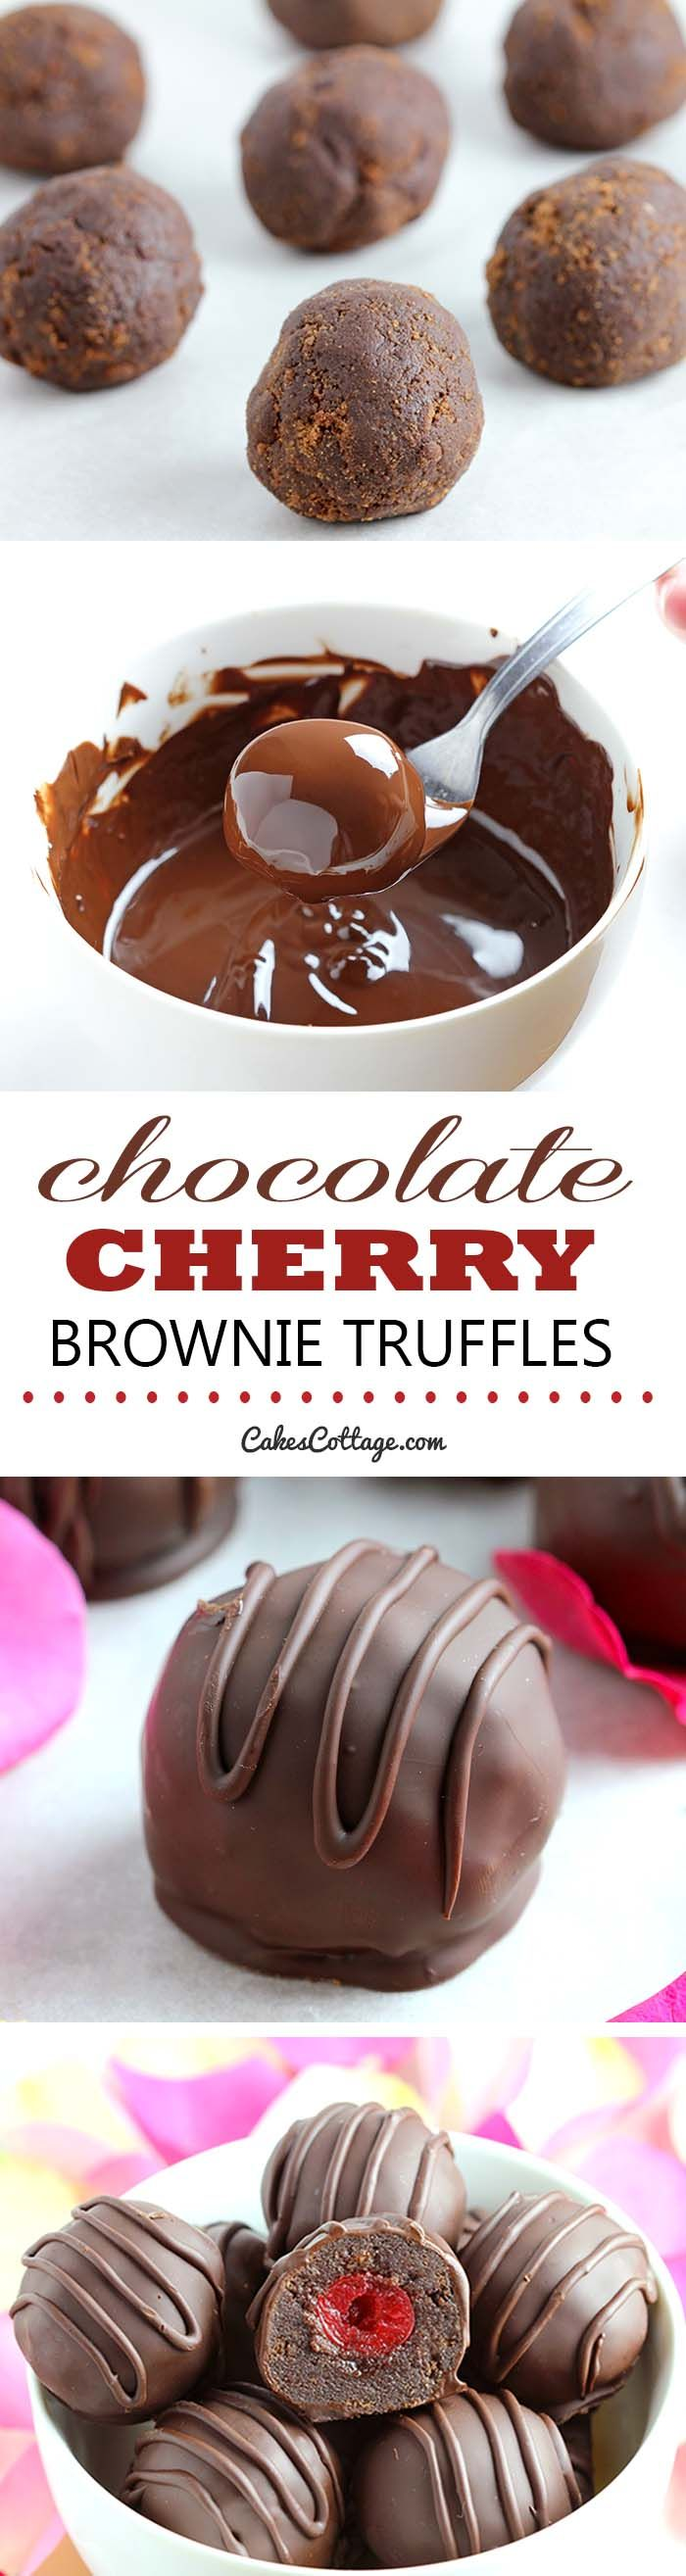 Want a sweet way to say Happy Valentine's Day? Chocolate Cherry Brownie Truffles are the perfect way to do it!